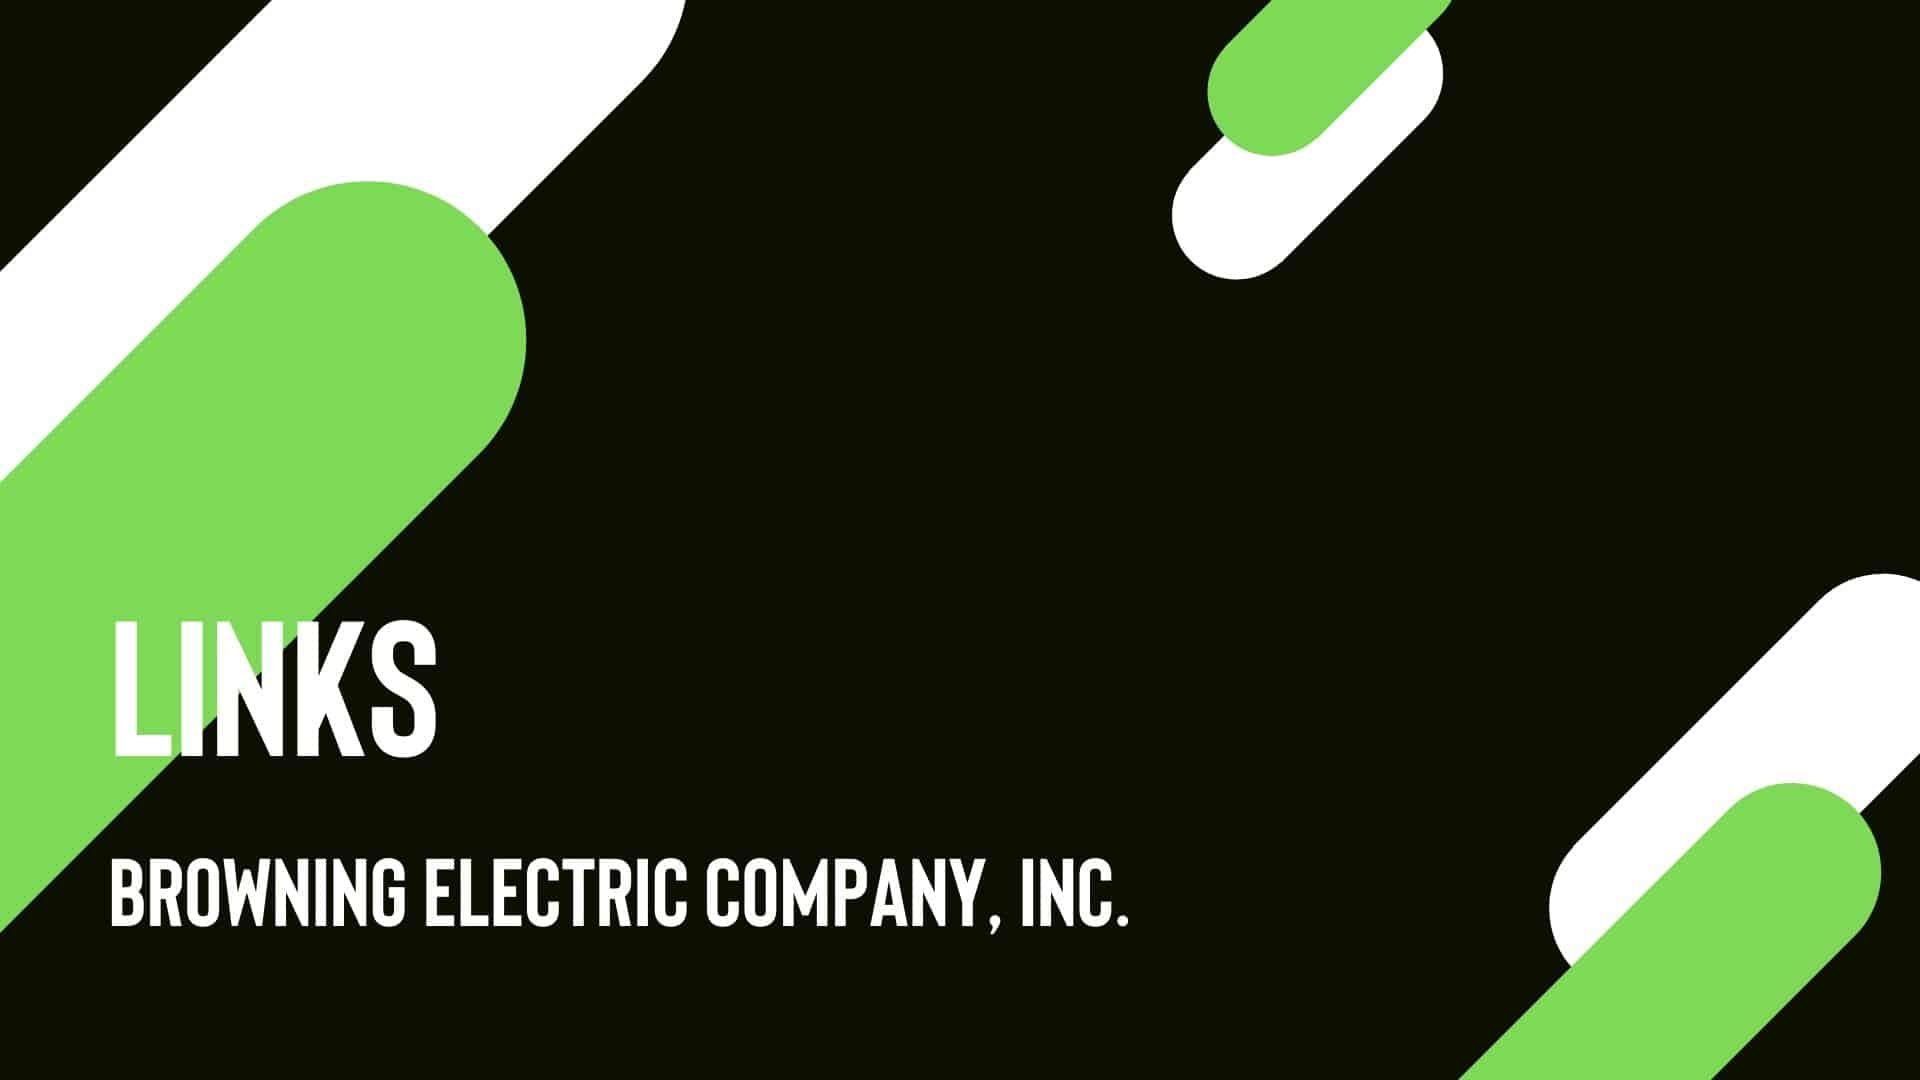 links browning electric company web page design